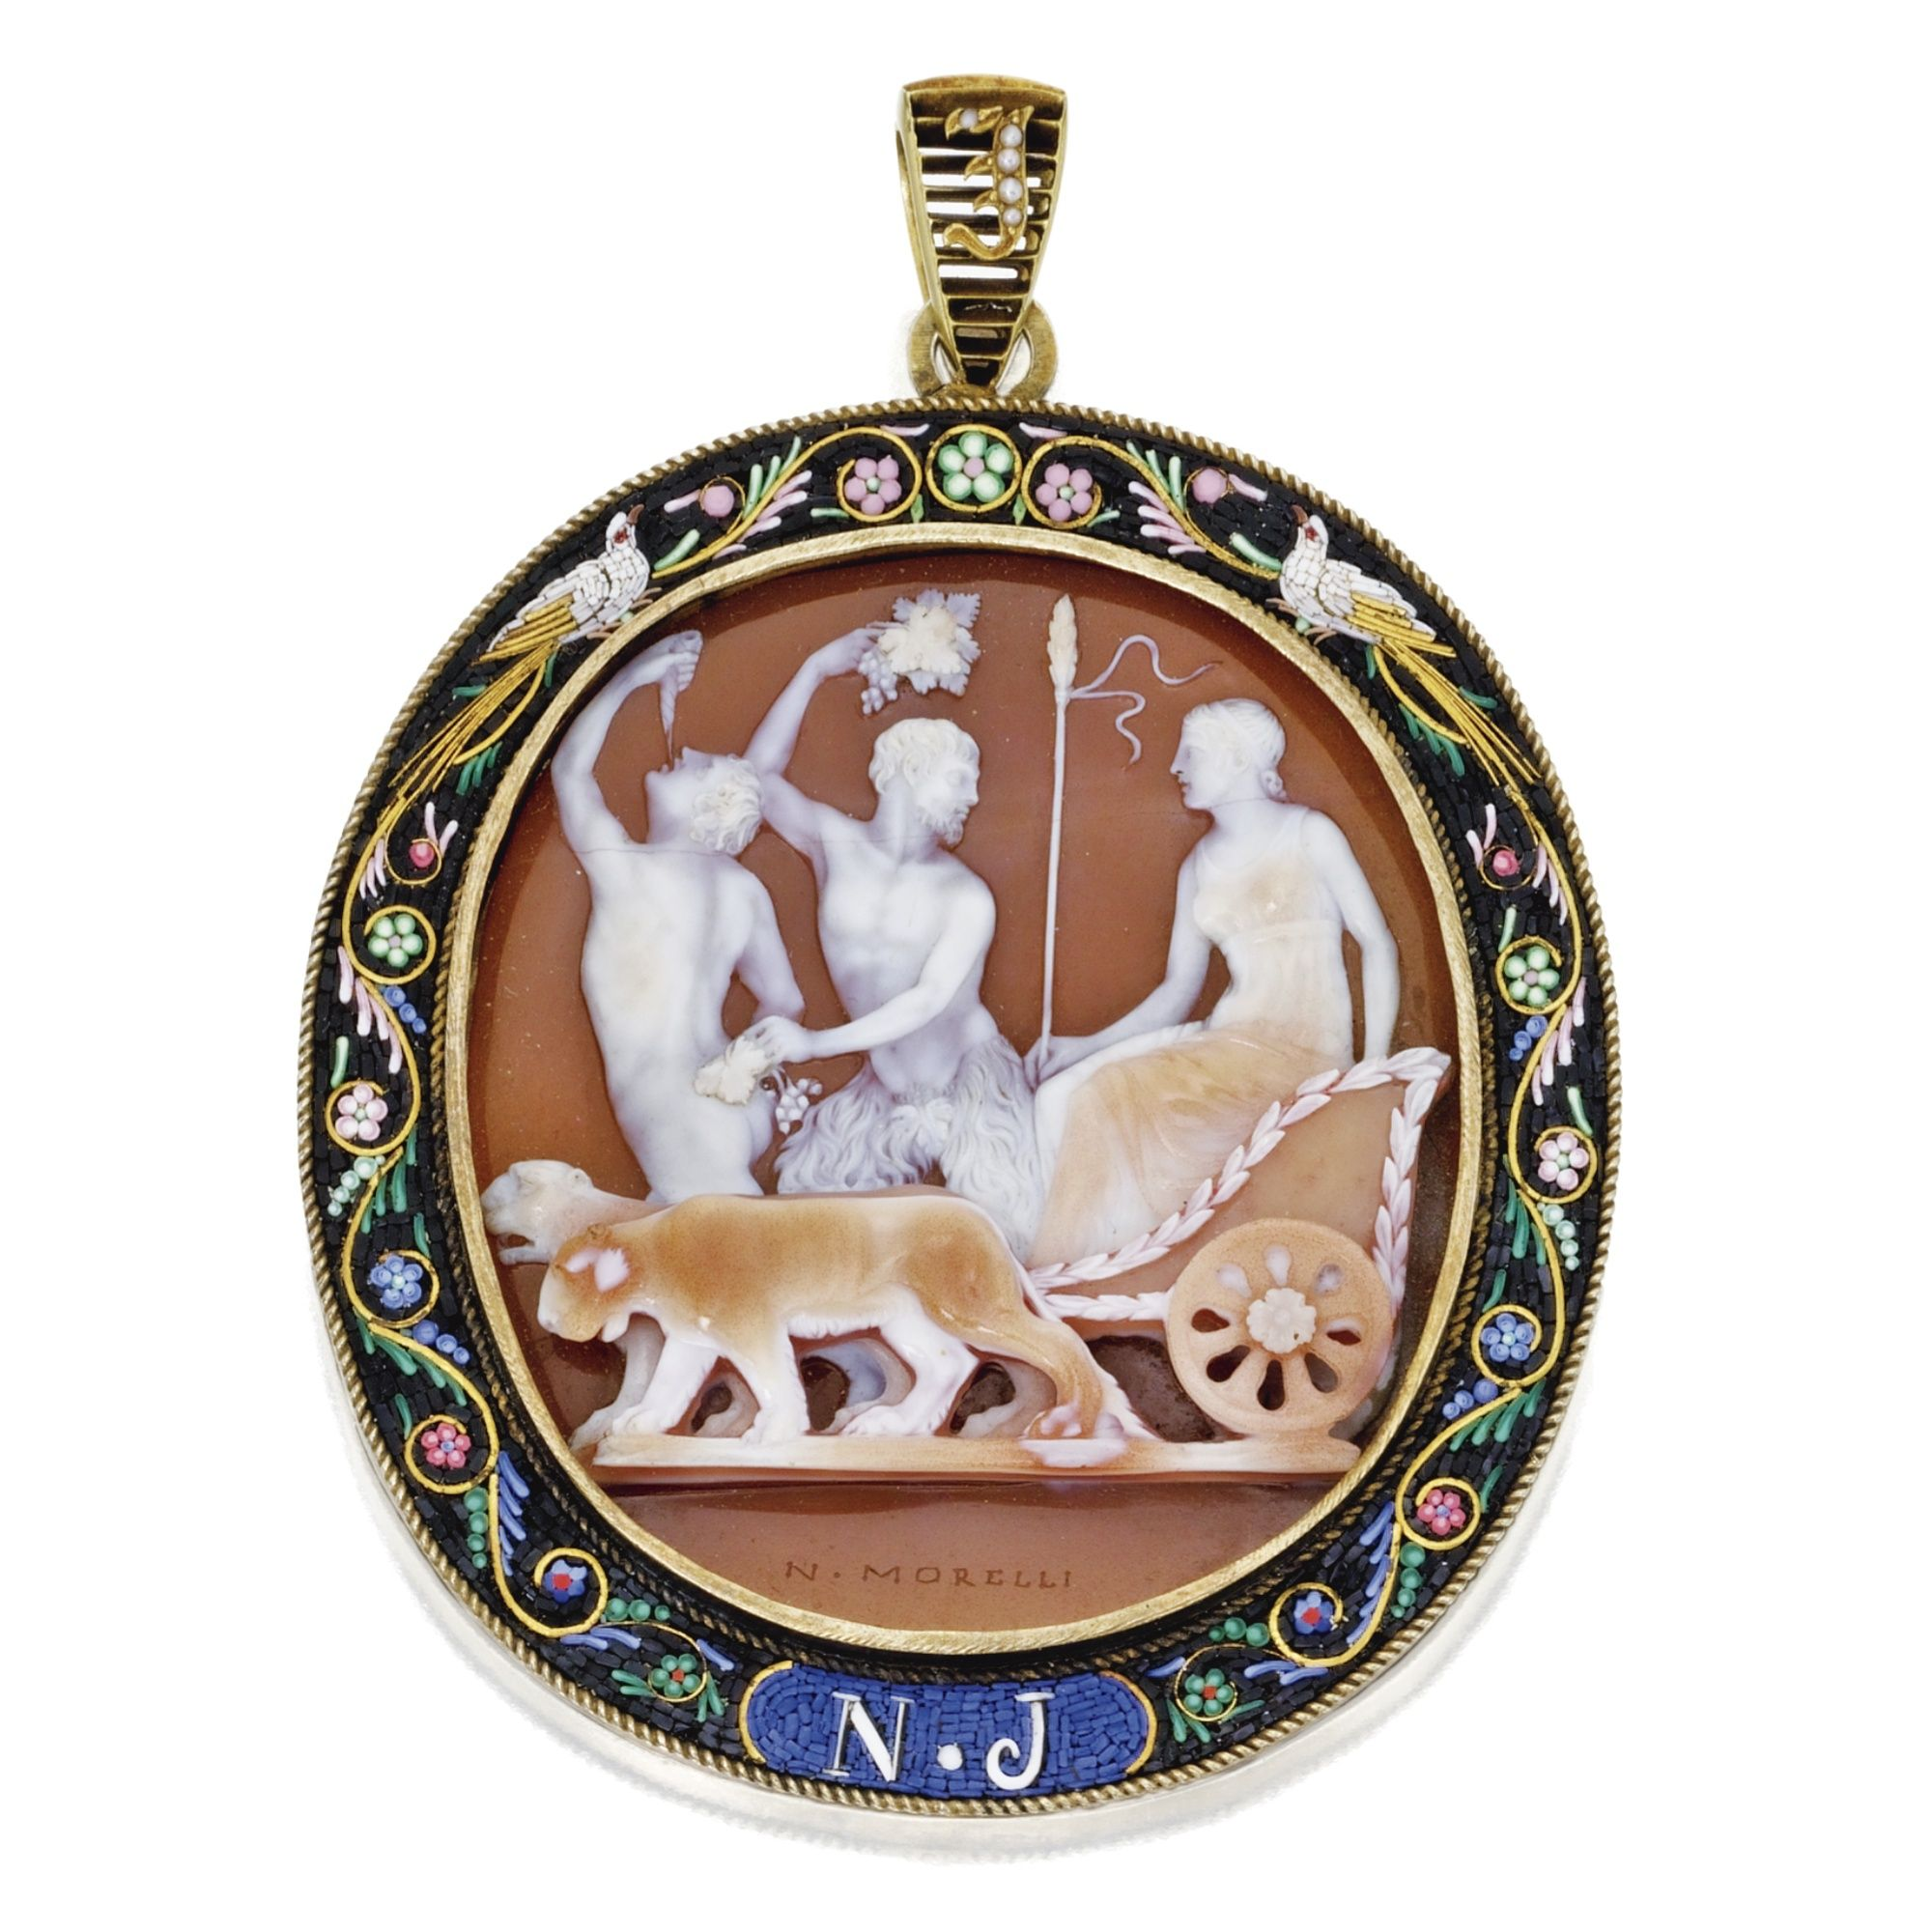 Silver-Gilt, Gold, Carved Shell Cameo, Micromosaic and Seed Pearl Pendant, Nicolo Morelli, Early 19th Century